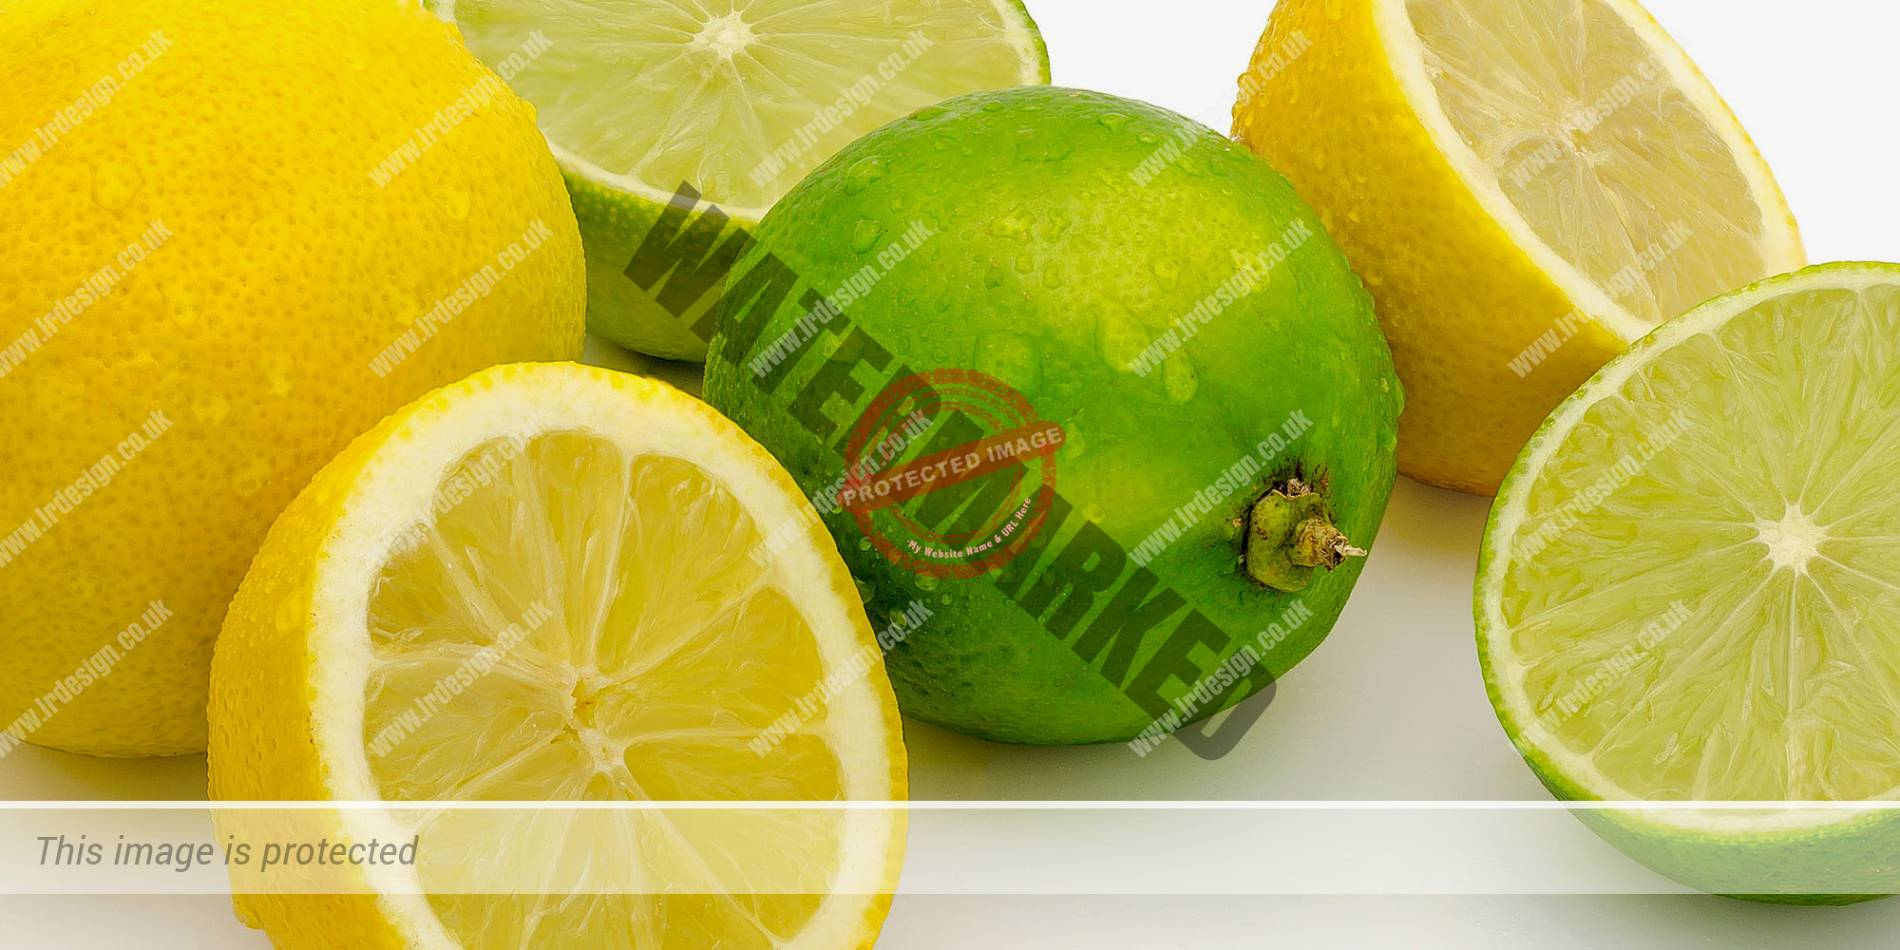 still life showing lemons and limes.